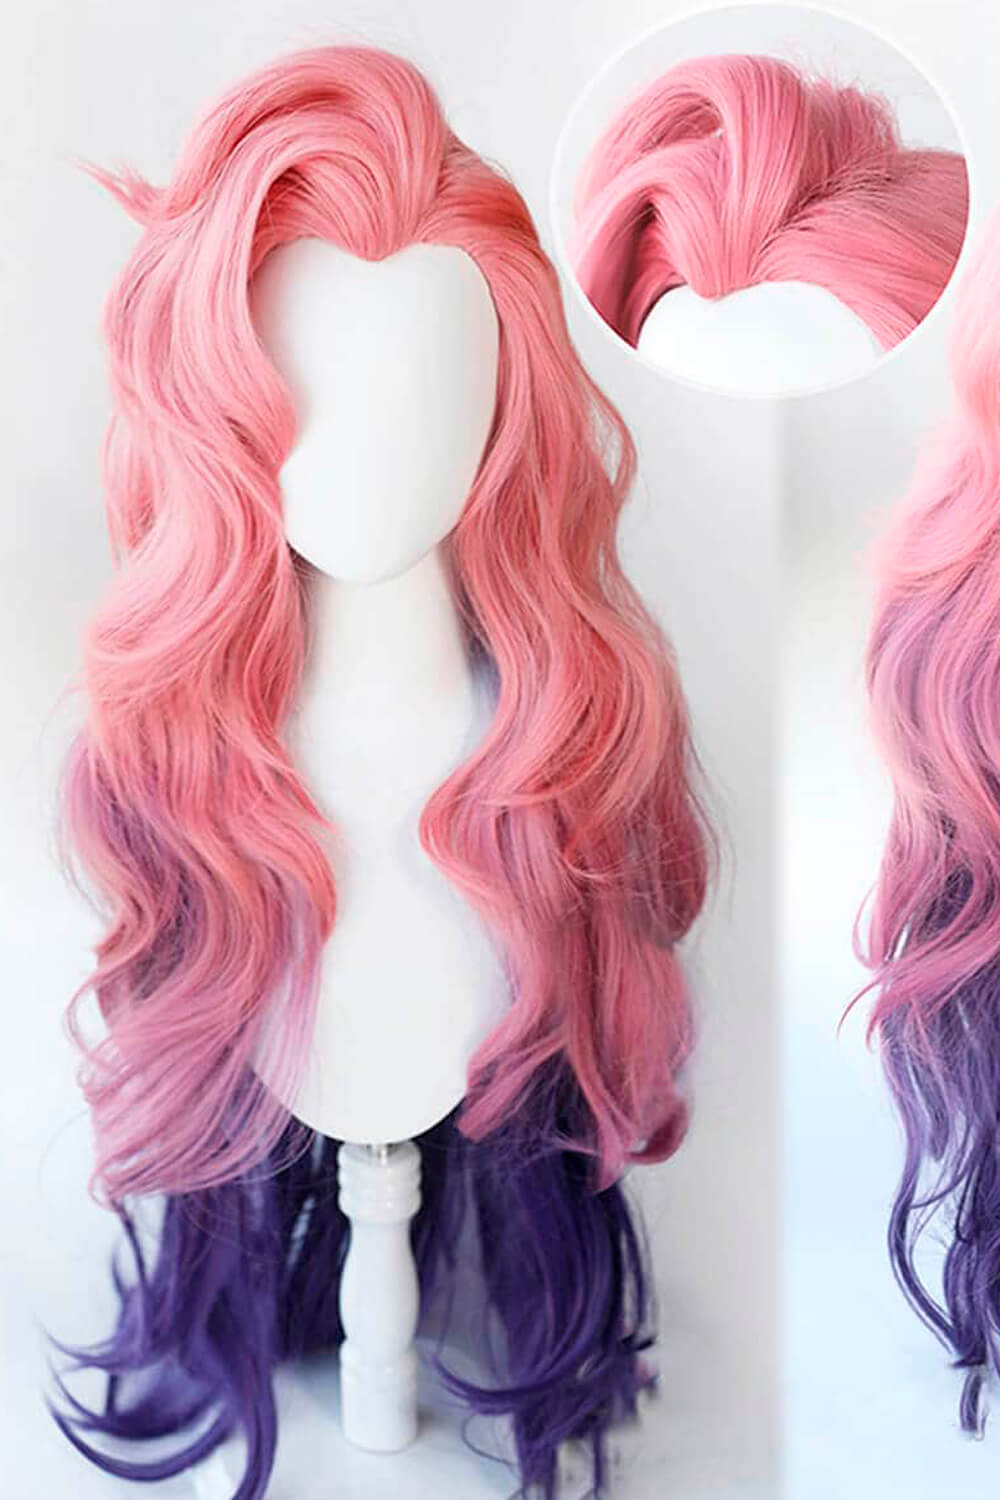 Seraphine Wig Pink League of Legends Cosplay LOL